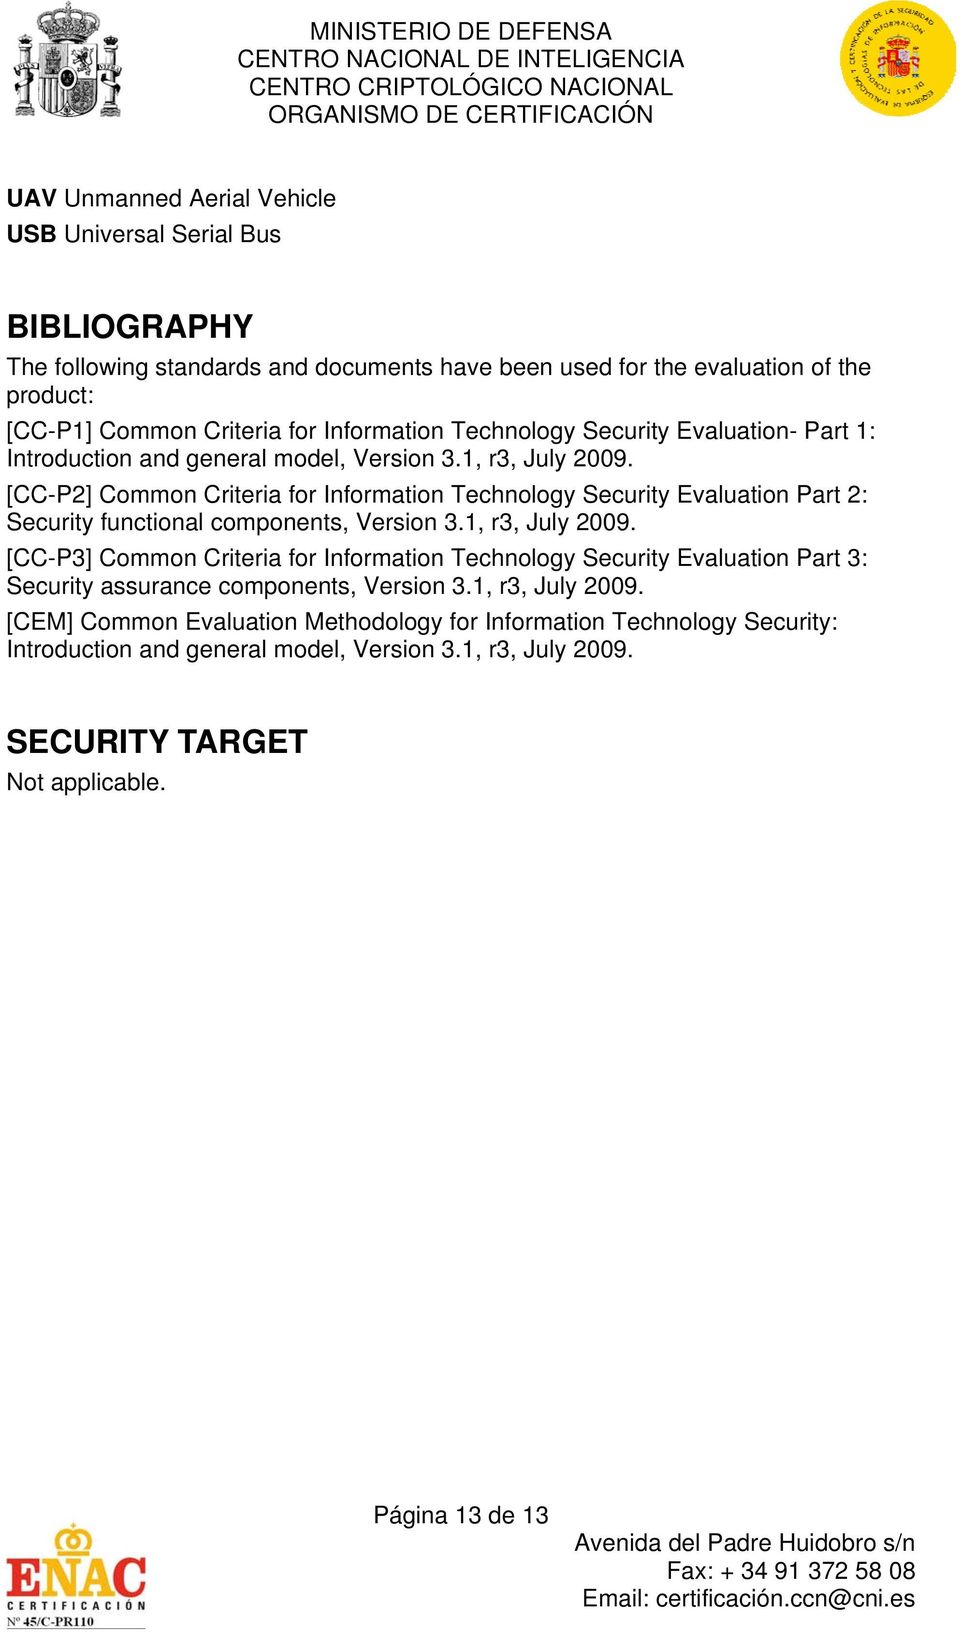 [CC-P2] Common Criteria for Information Technology Security Evaluation Part 2: Security functional components, Version 3.1, r3, July 2009.